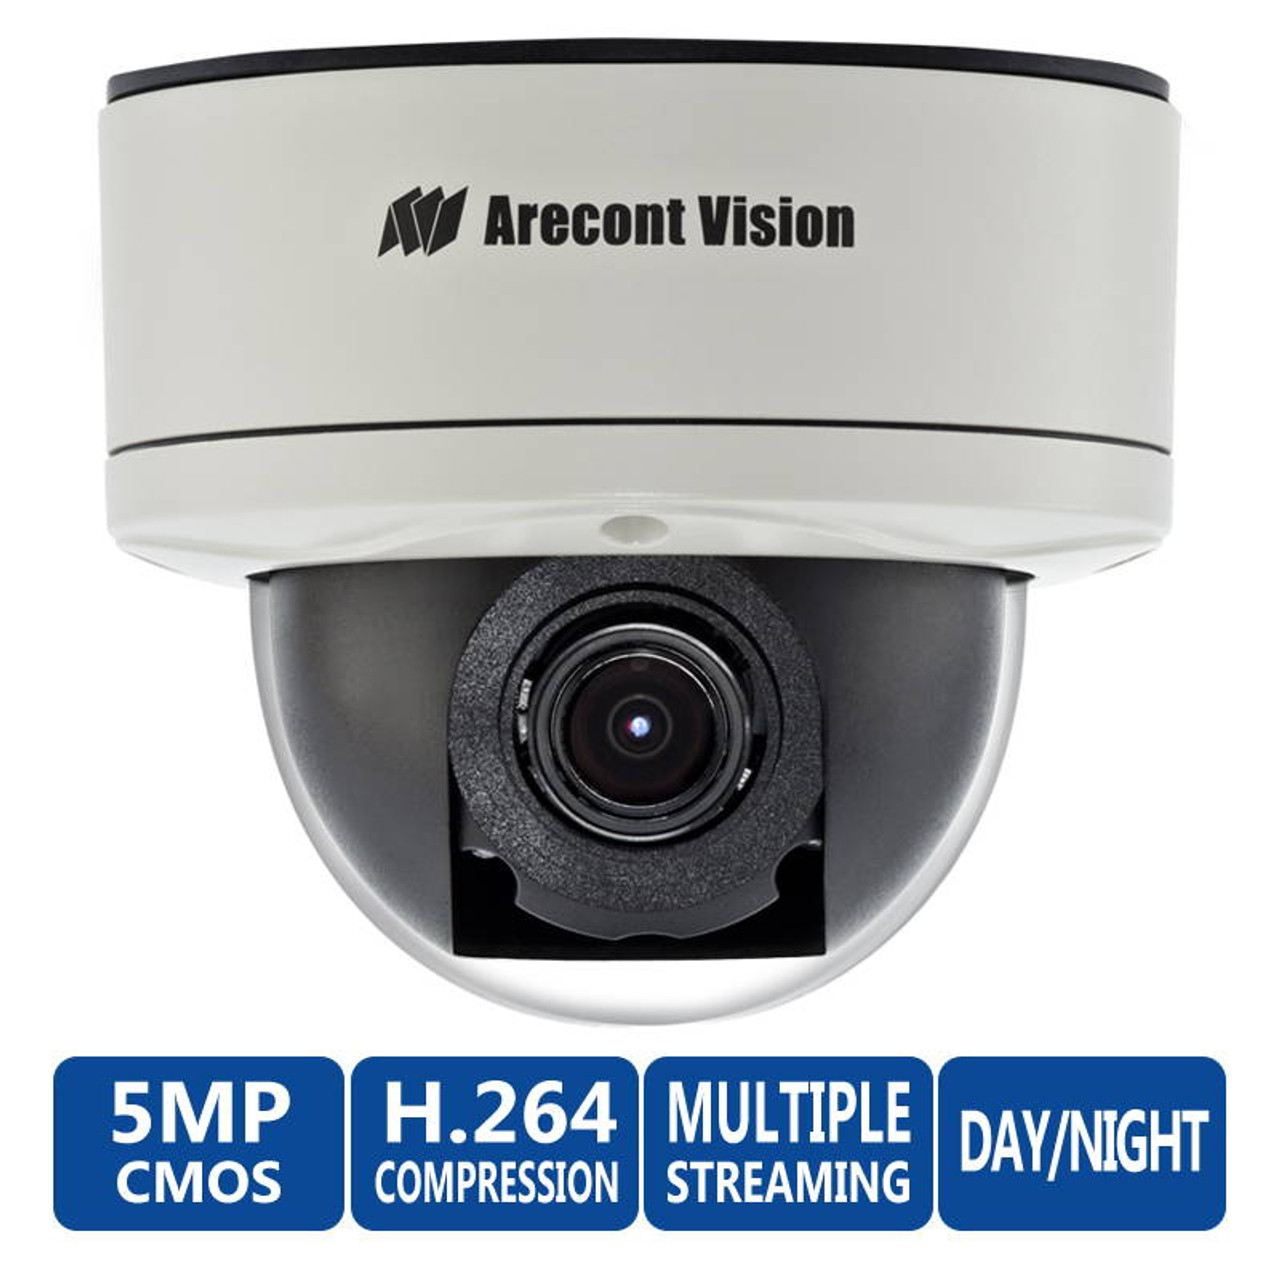 ARECONT VISION AV5255AM IP CAMERA DRIVERS FOR MAC DOWNLOAD